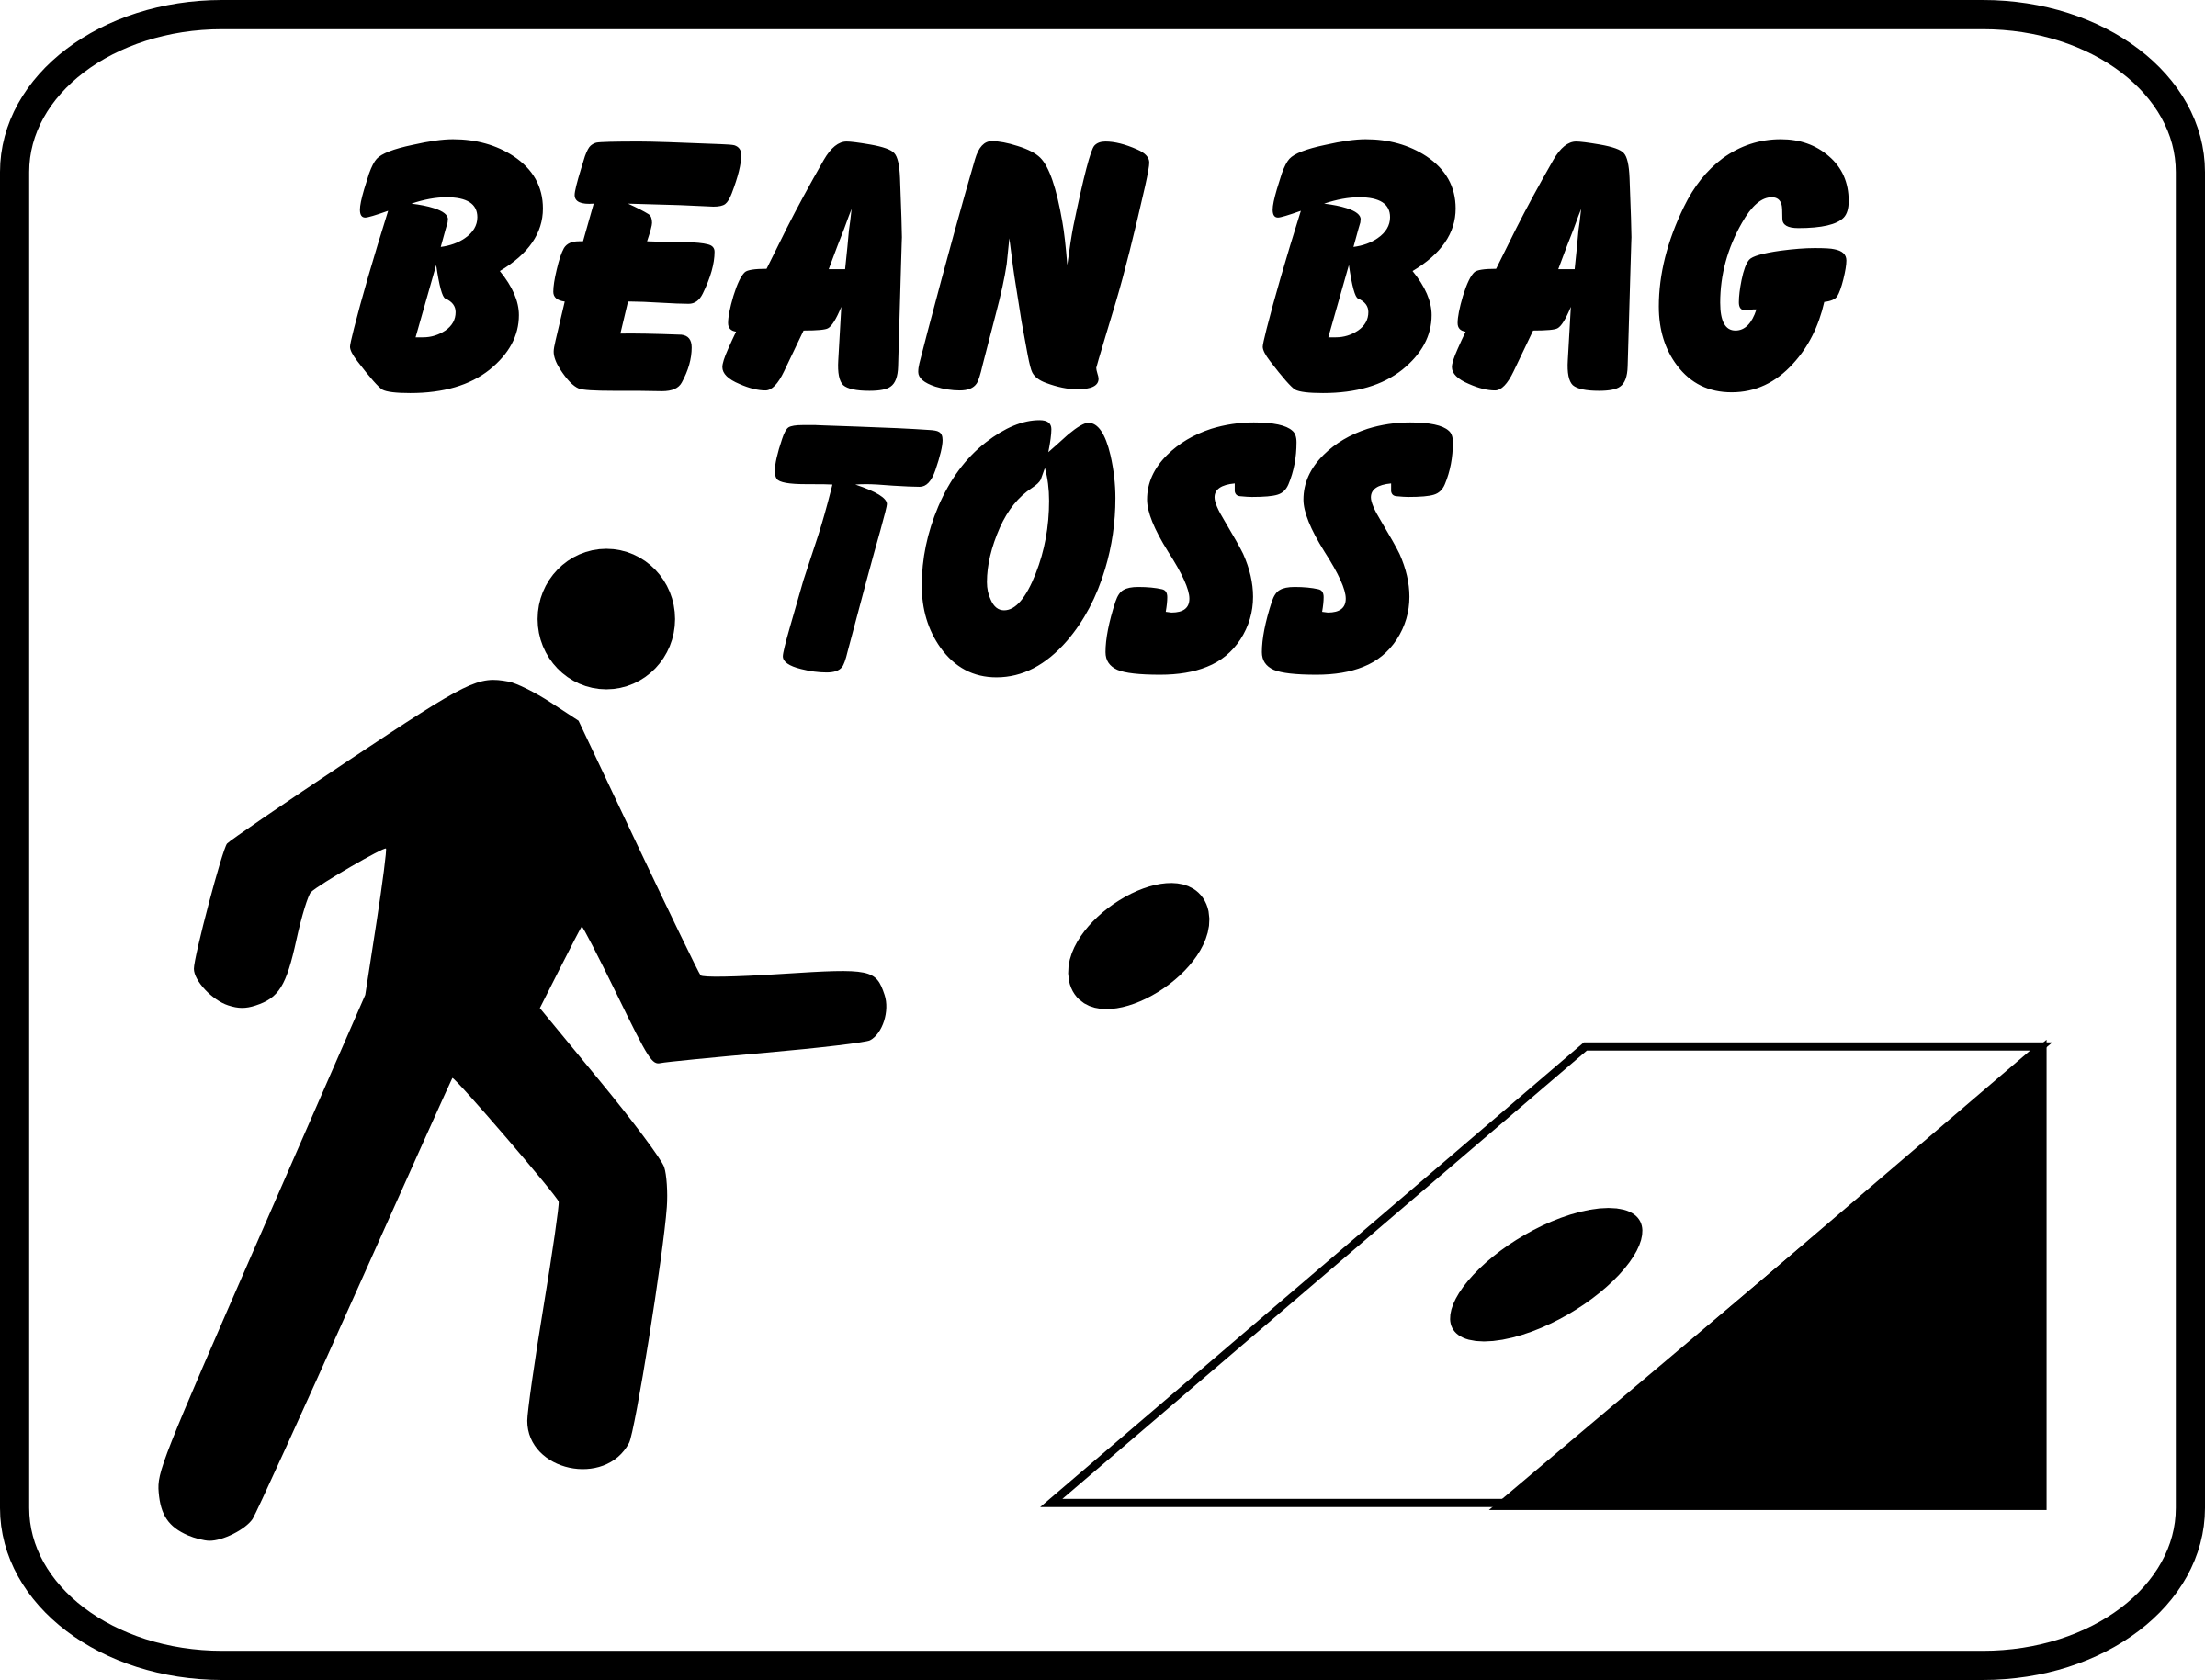 bean bag toss sign by pjsvbfcm